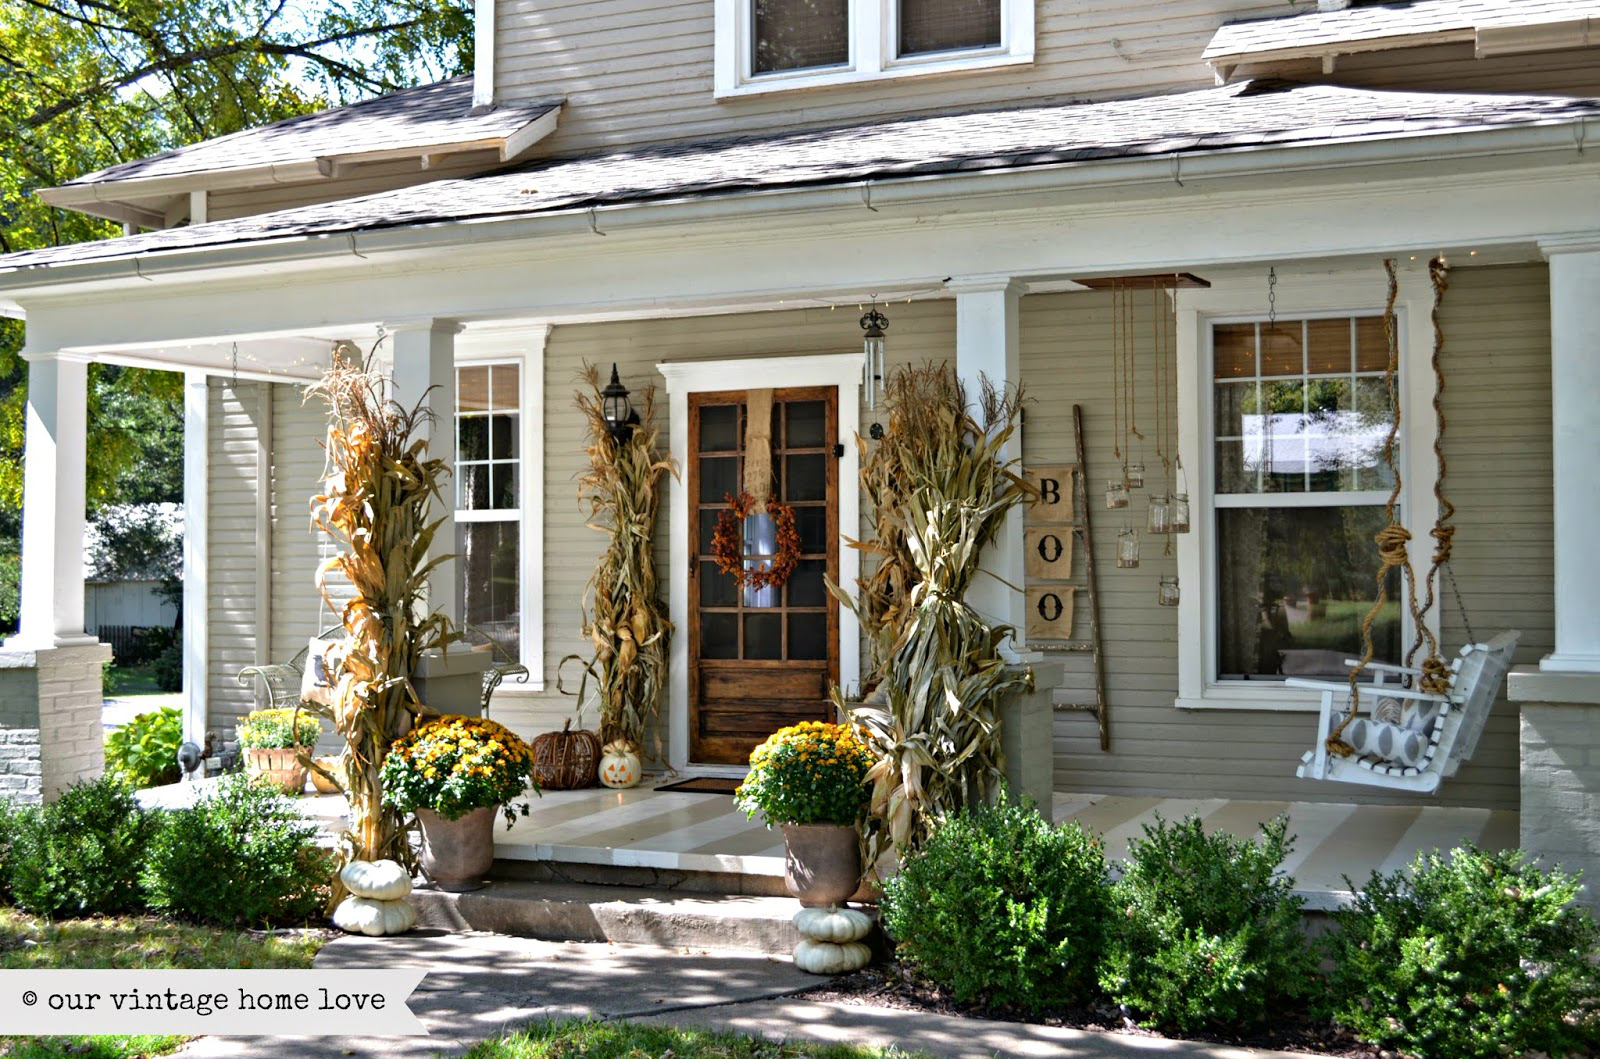 Outdoor fall decorating ideas front porch - Front Porch Design Ideas Front Porch With Knee Wall Before Remodel 37 Fall Porch Decorating Ideas